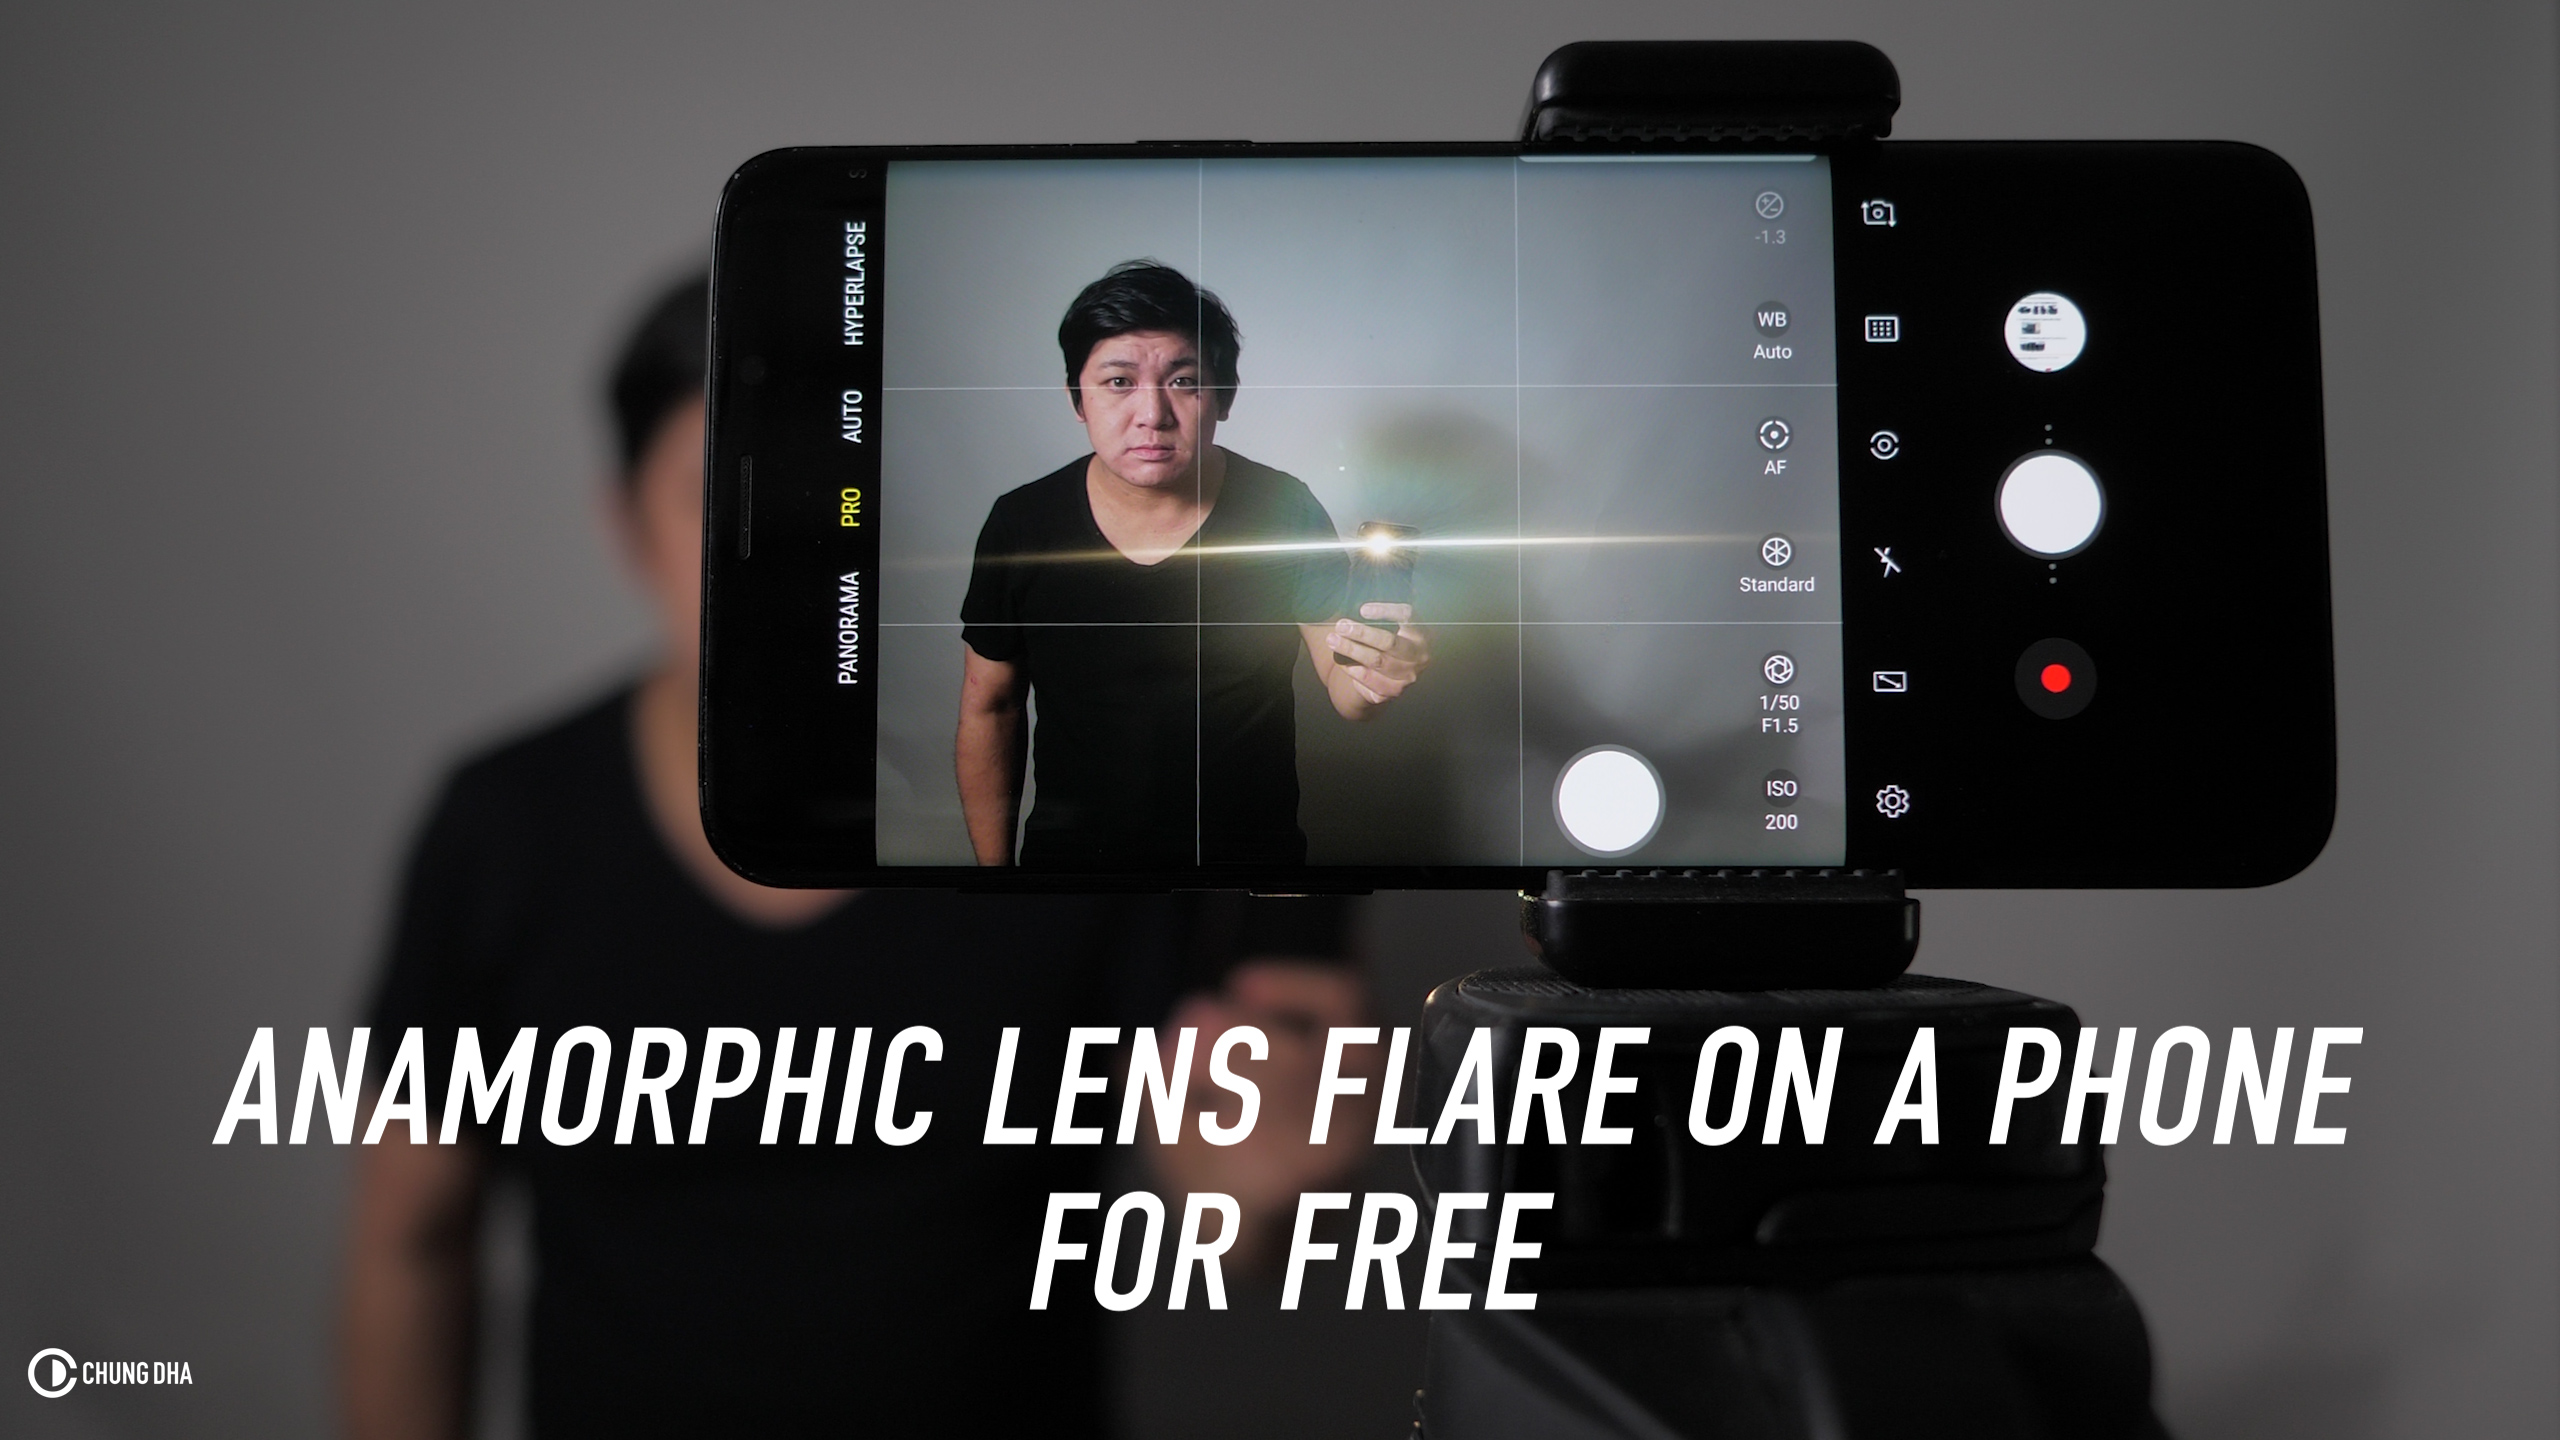 Anamorphic Lens Flare on a Phone for FREE tutorial